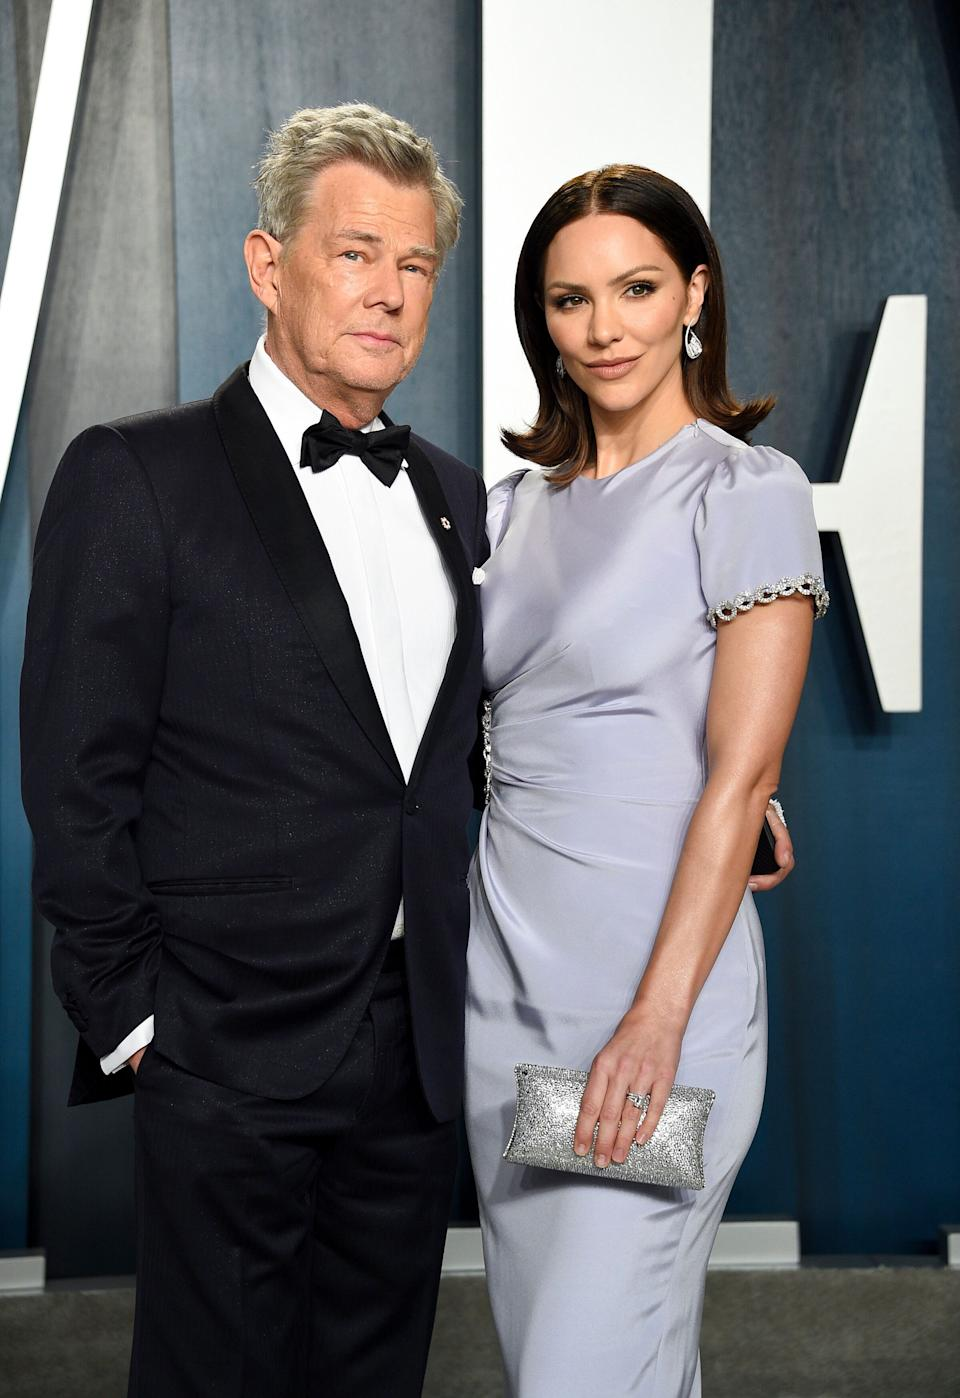 David Foster and Katharine McPhee pictured together at the Vanity Fair Oscar Party earlier this year. (Photo: Evan Agostini/Invision/AP)